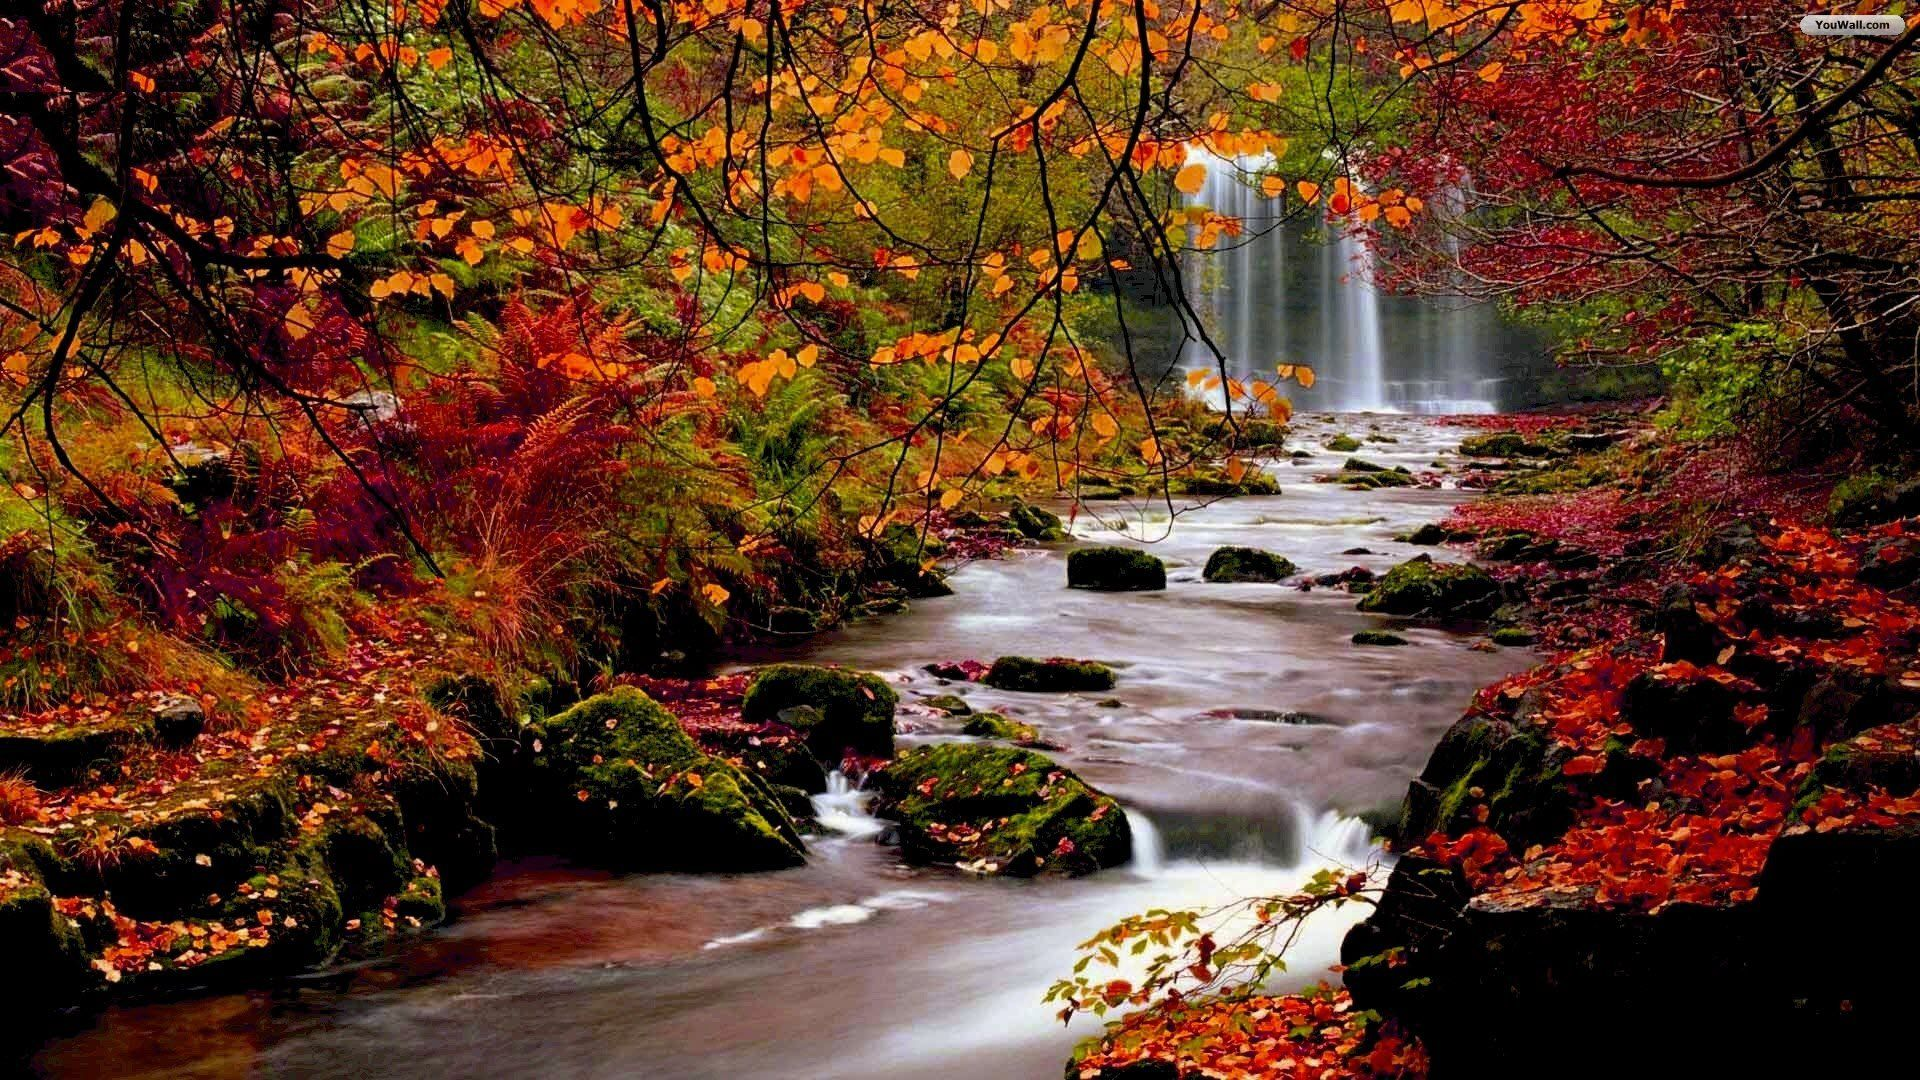 Fall images YouWall Autumn Forest Waterfall Wallpaper